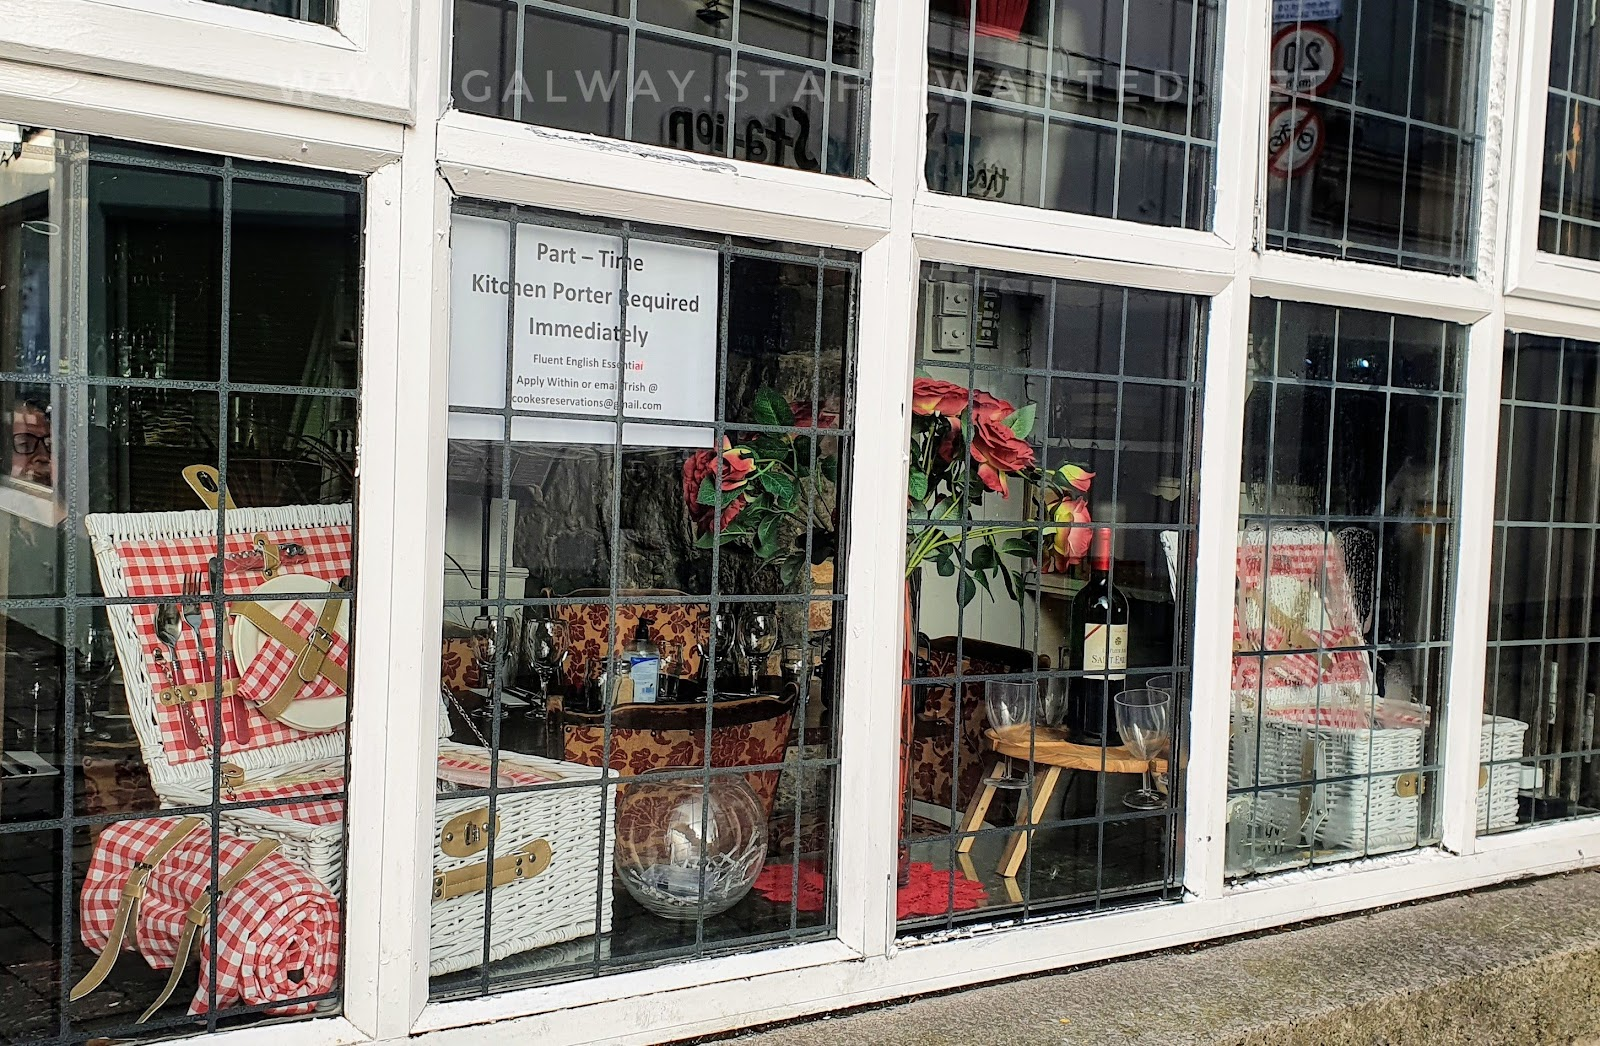 Kitchen porter wanted sign, in a window with a display of picnic baskets with red and white gingham lining and white wicker-work baskets